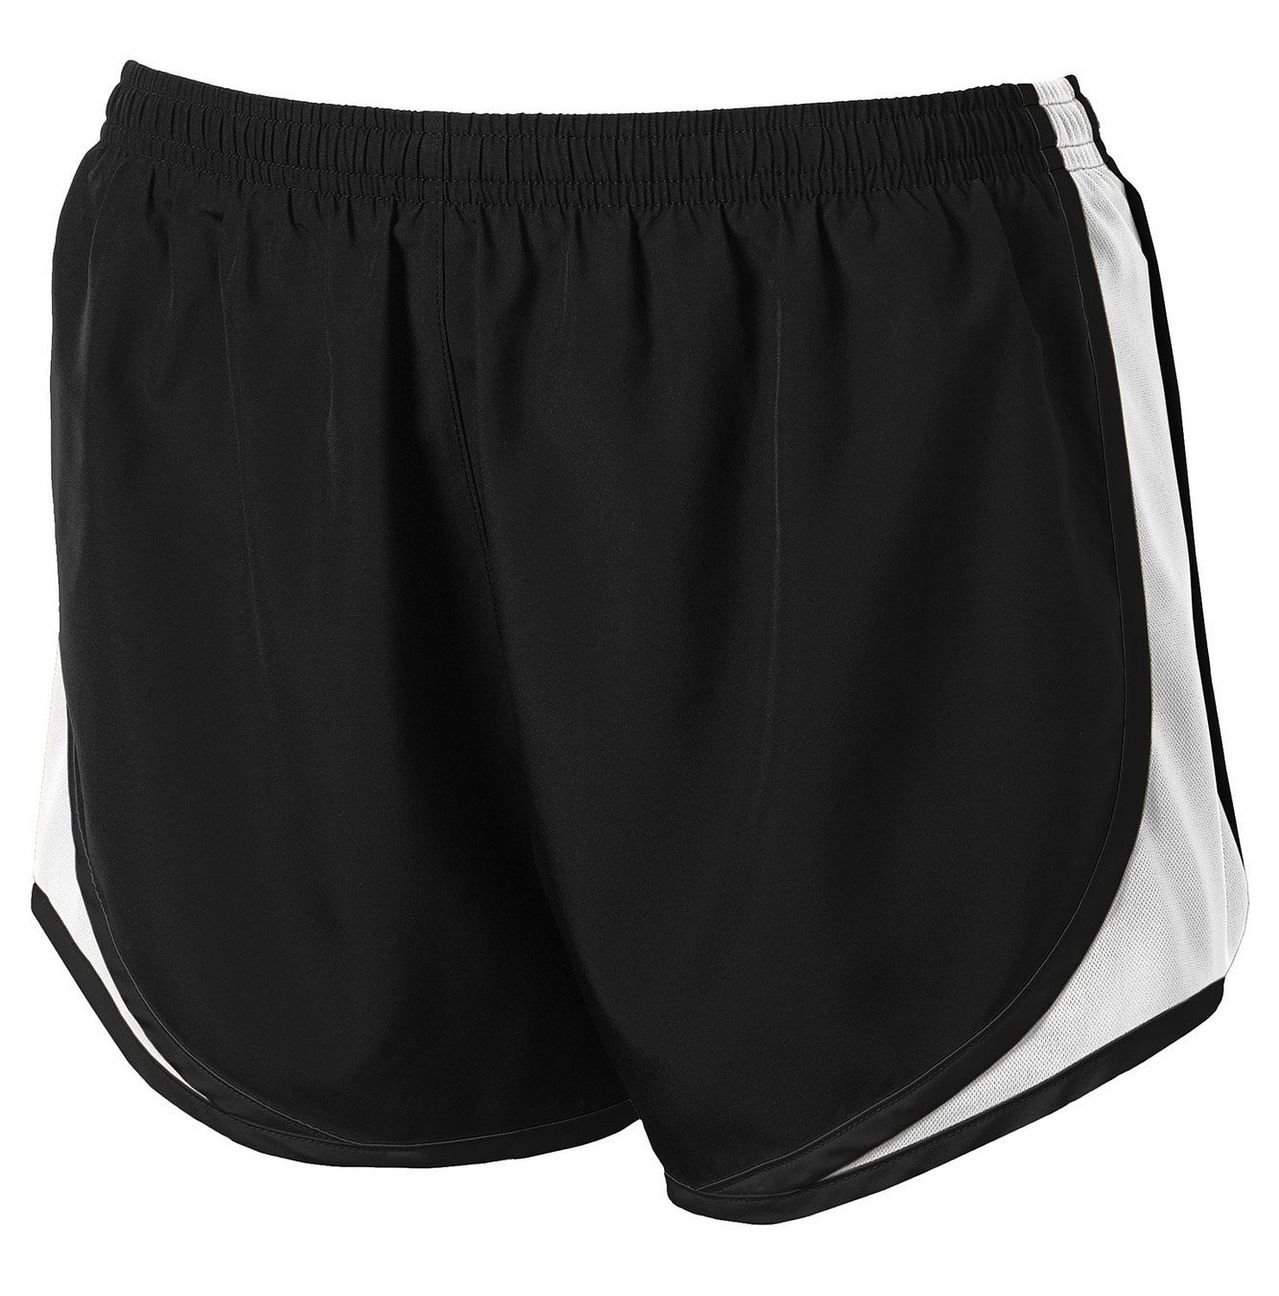 Clothe Co. Ladies Moisture Wicking Sport Running Shorts, Black/White/Black, XS by Clothe Co. (Image #1)